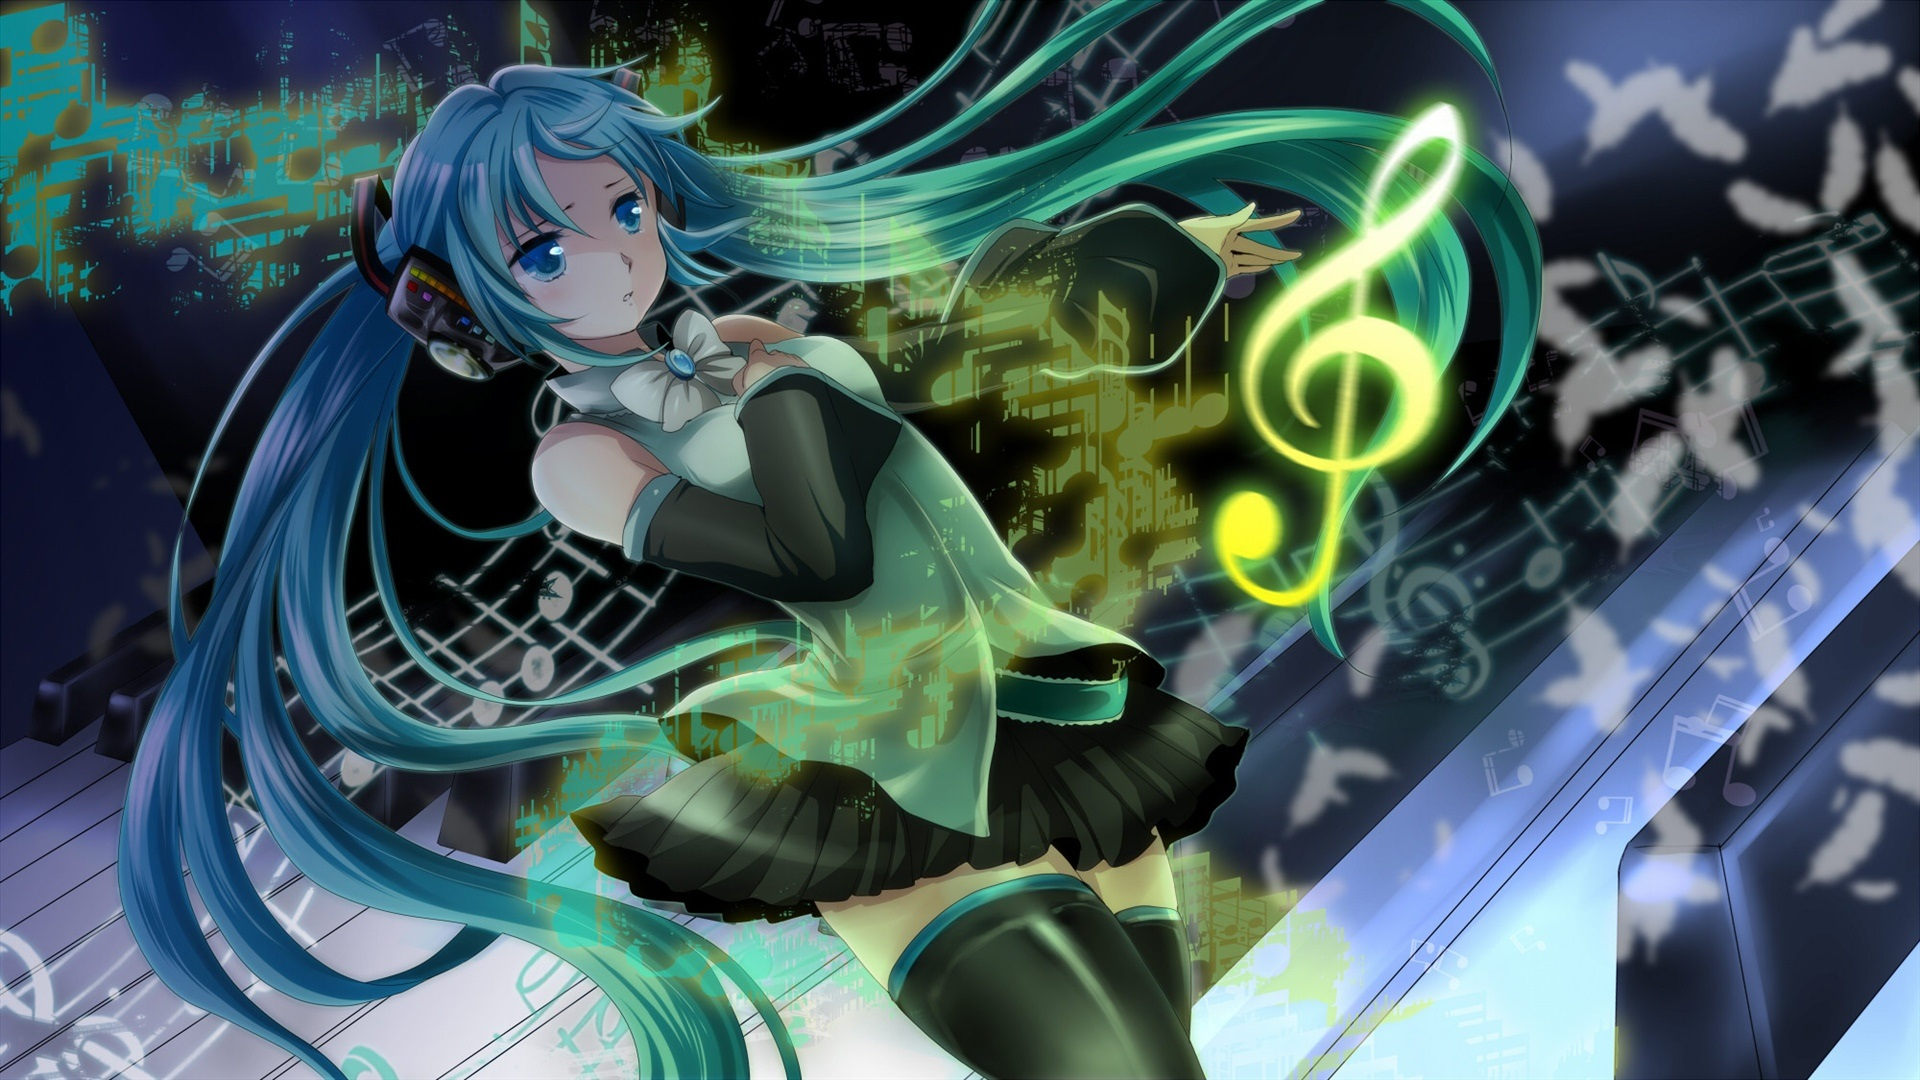 Hatsune Miku Blue Hair Girl Headphones Music Anime